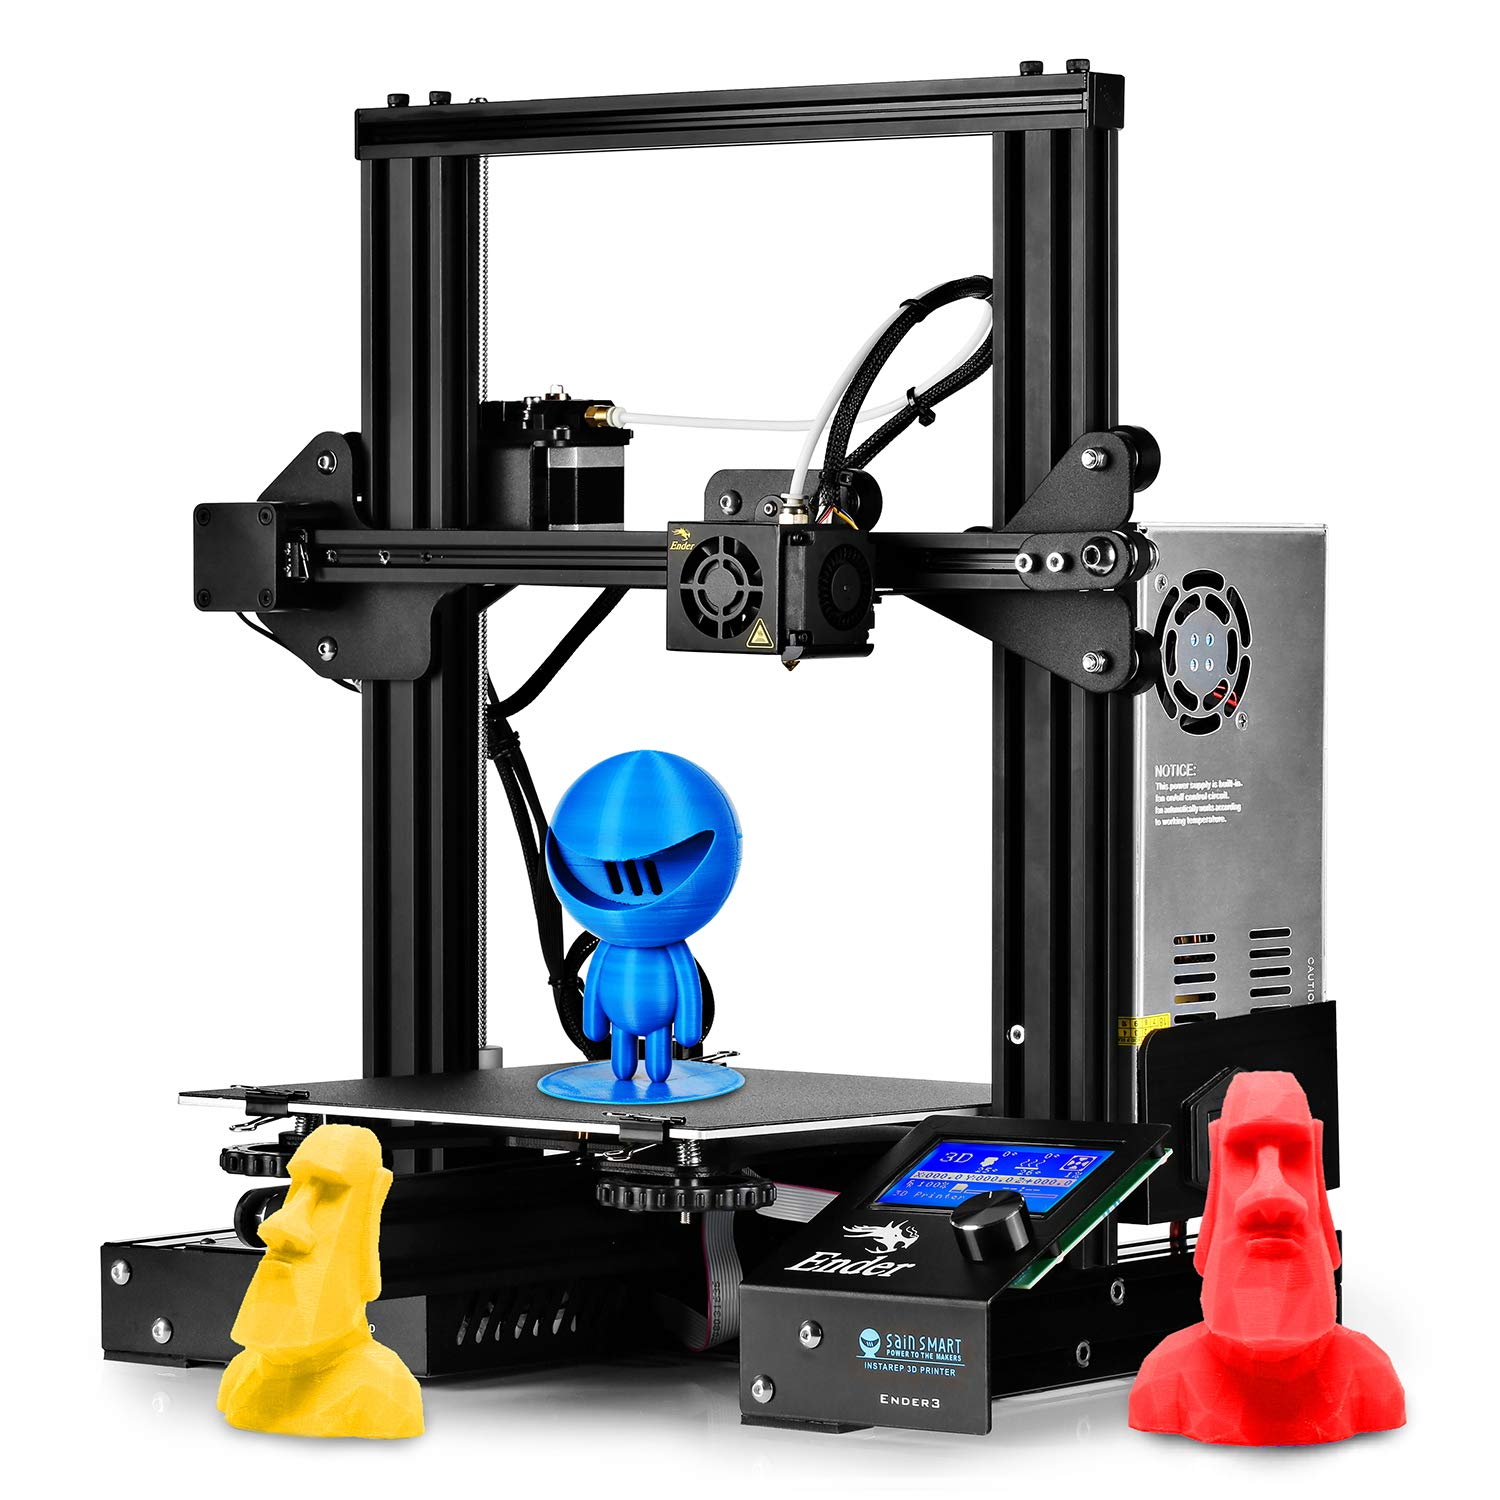 "SainSmart x Creality Ender-3 3D Printer, Resume Printing V-Slot Prusa i3, Build Volume 8.7"" x 8.7"" x 9.8"", for Home & School Use"